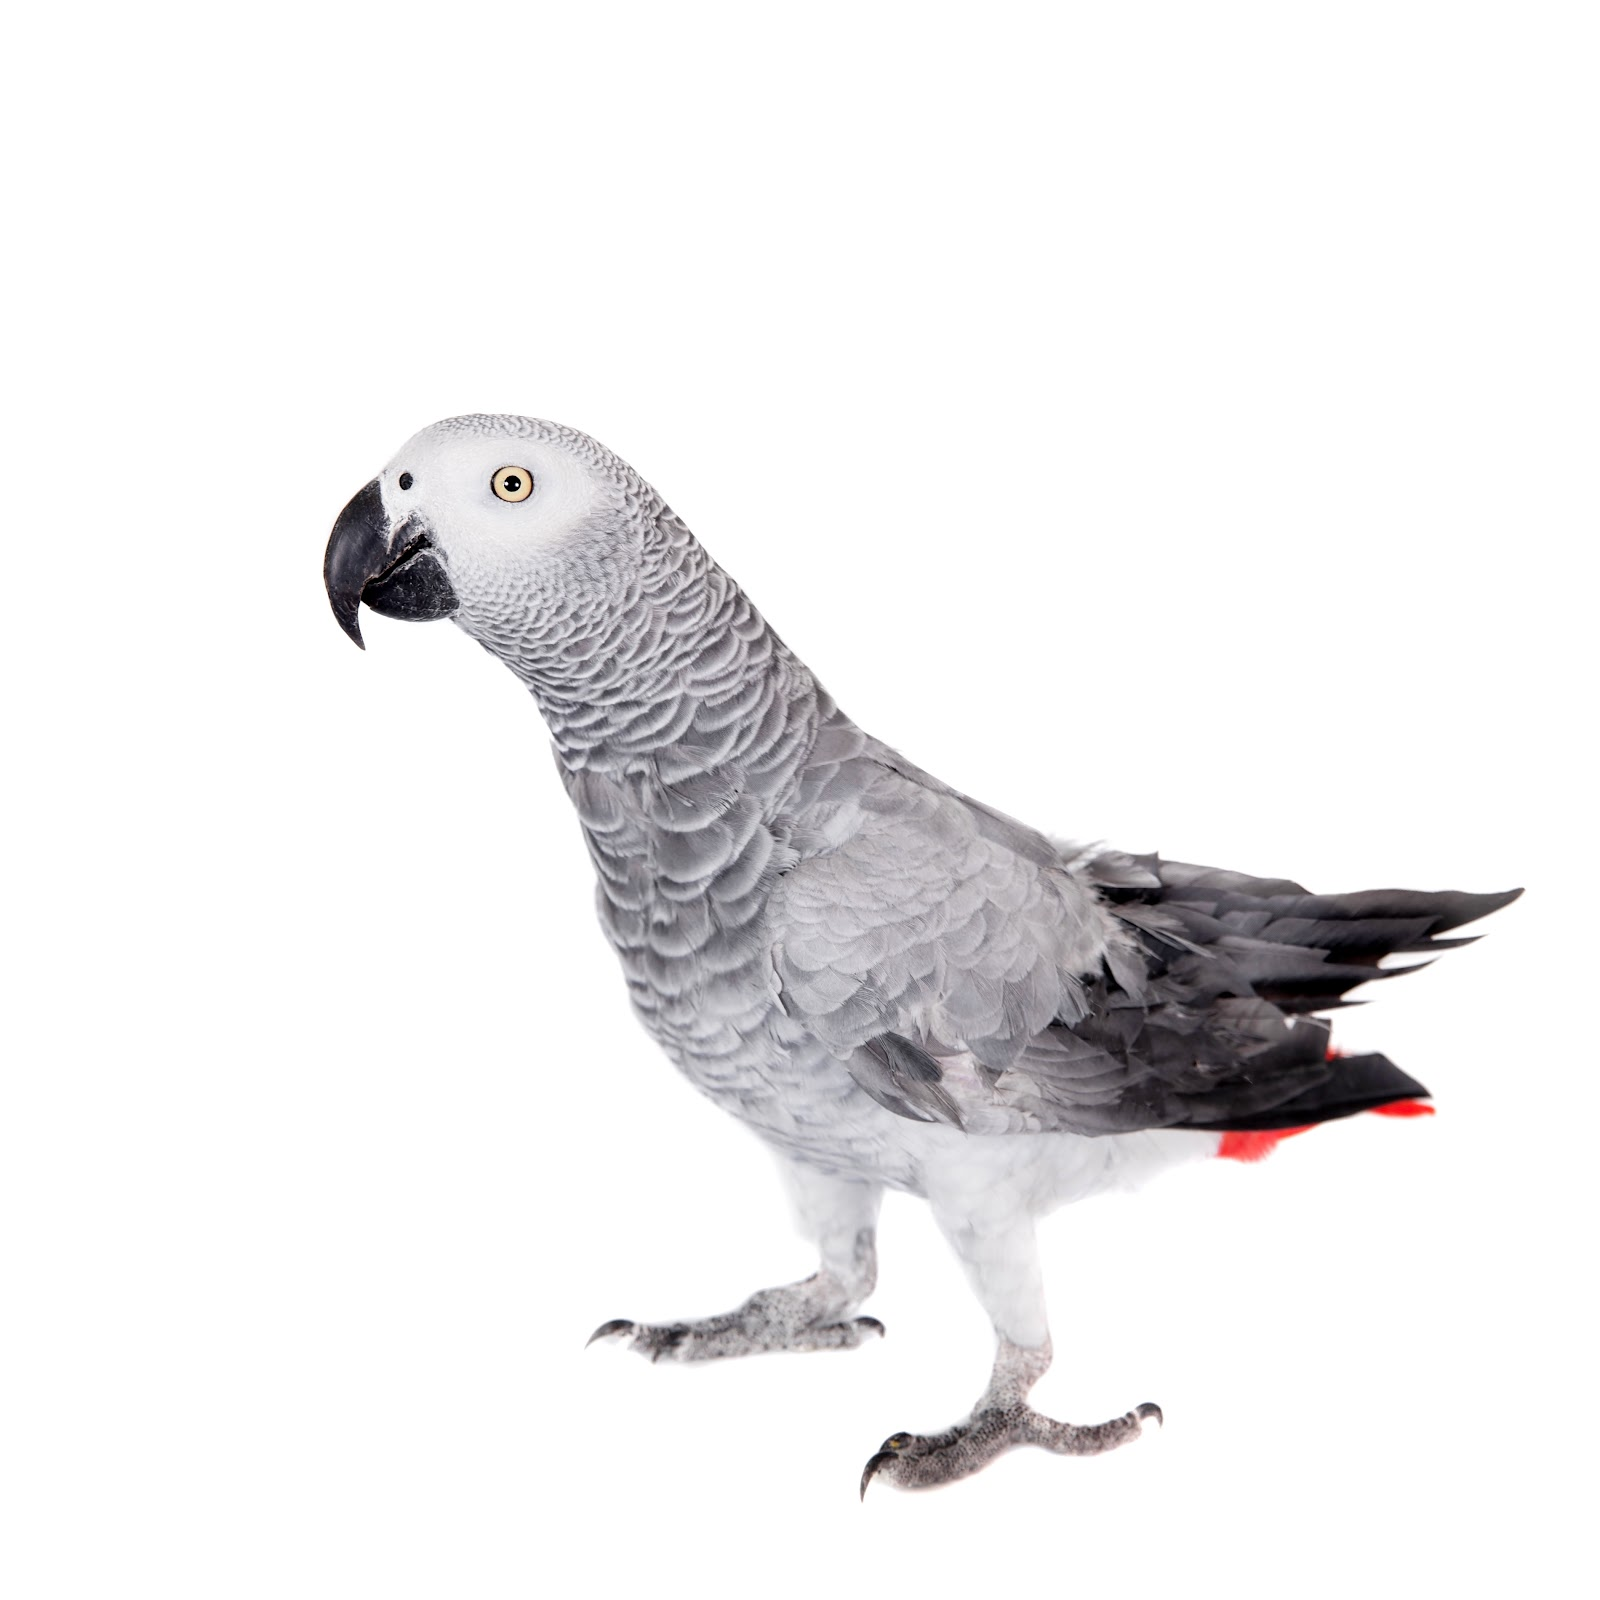 African grey parrot with clipped wings on white background.